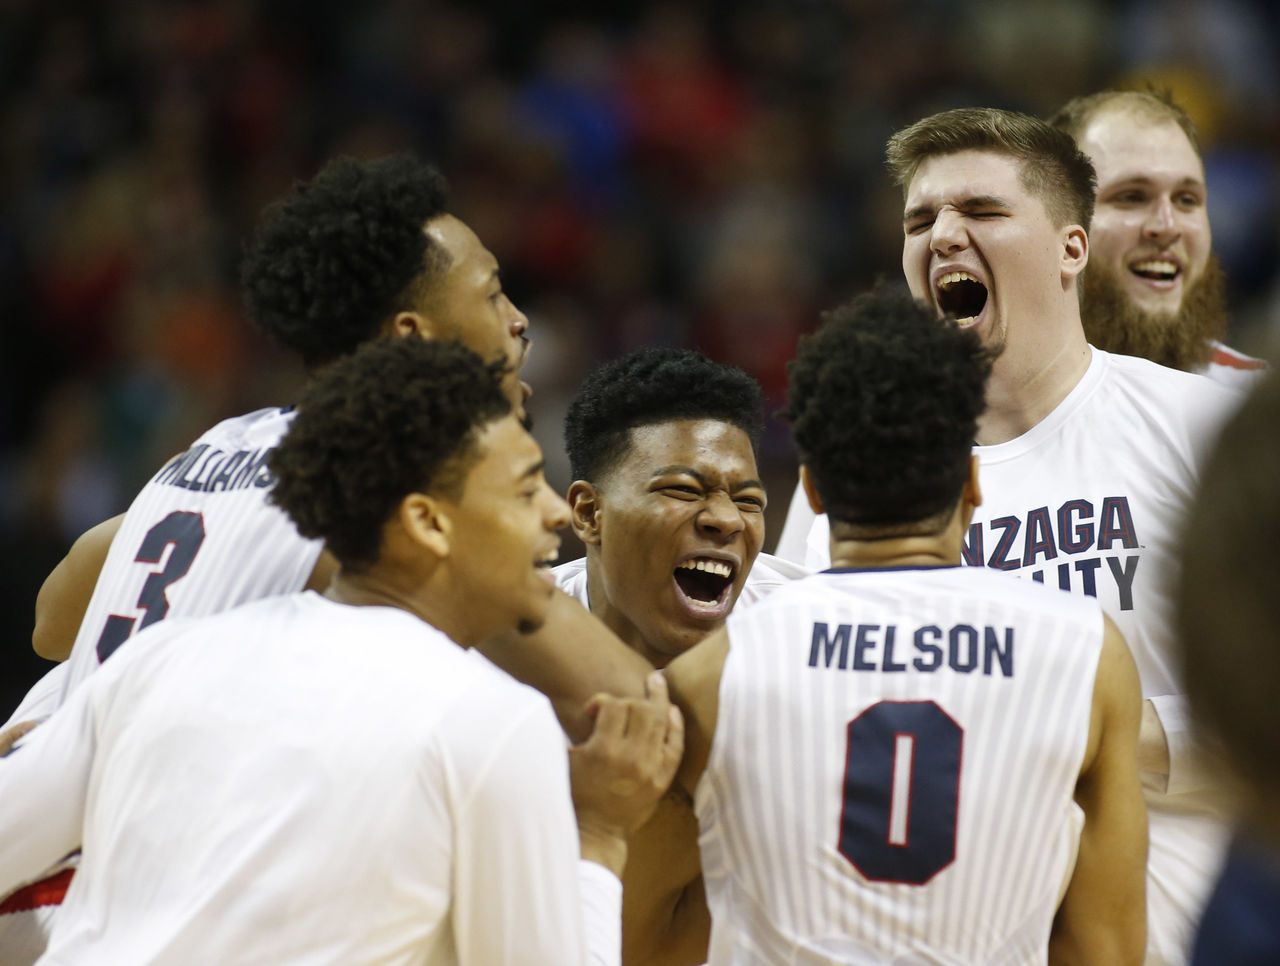 Cropped 2017 03 24t021723z 419053804 nocid rtrmadp 3 ncaa basketball ncaa tournament west regional gonzaga vs west virginia